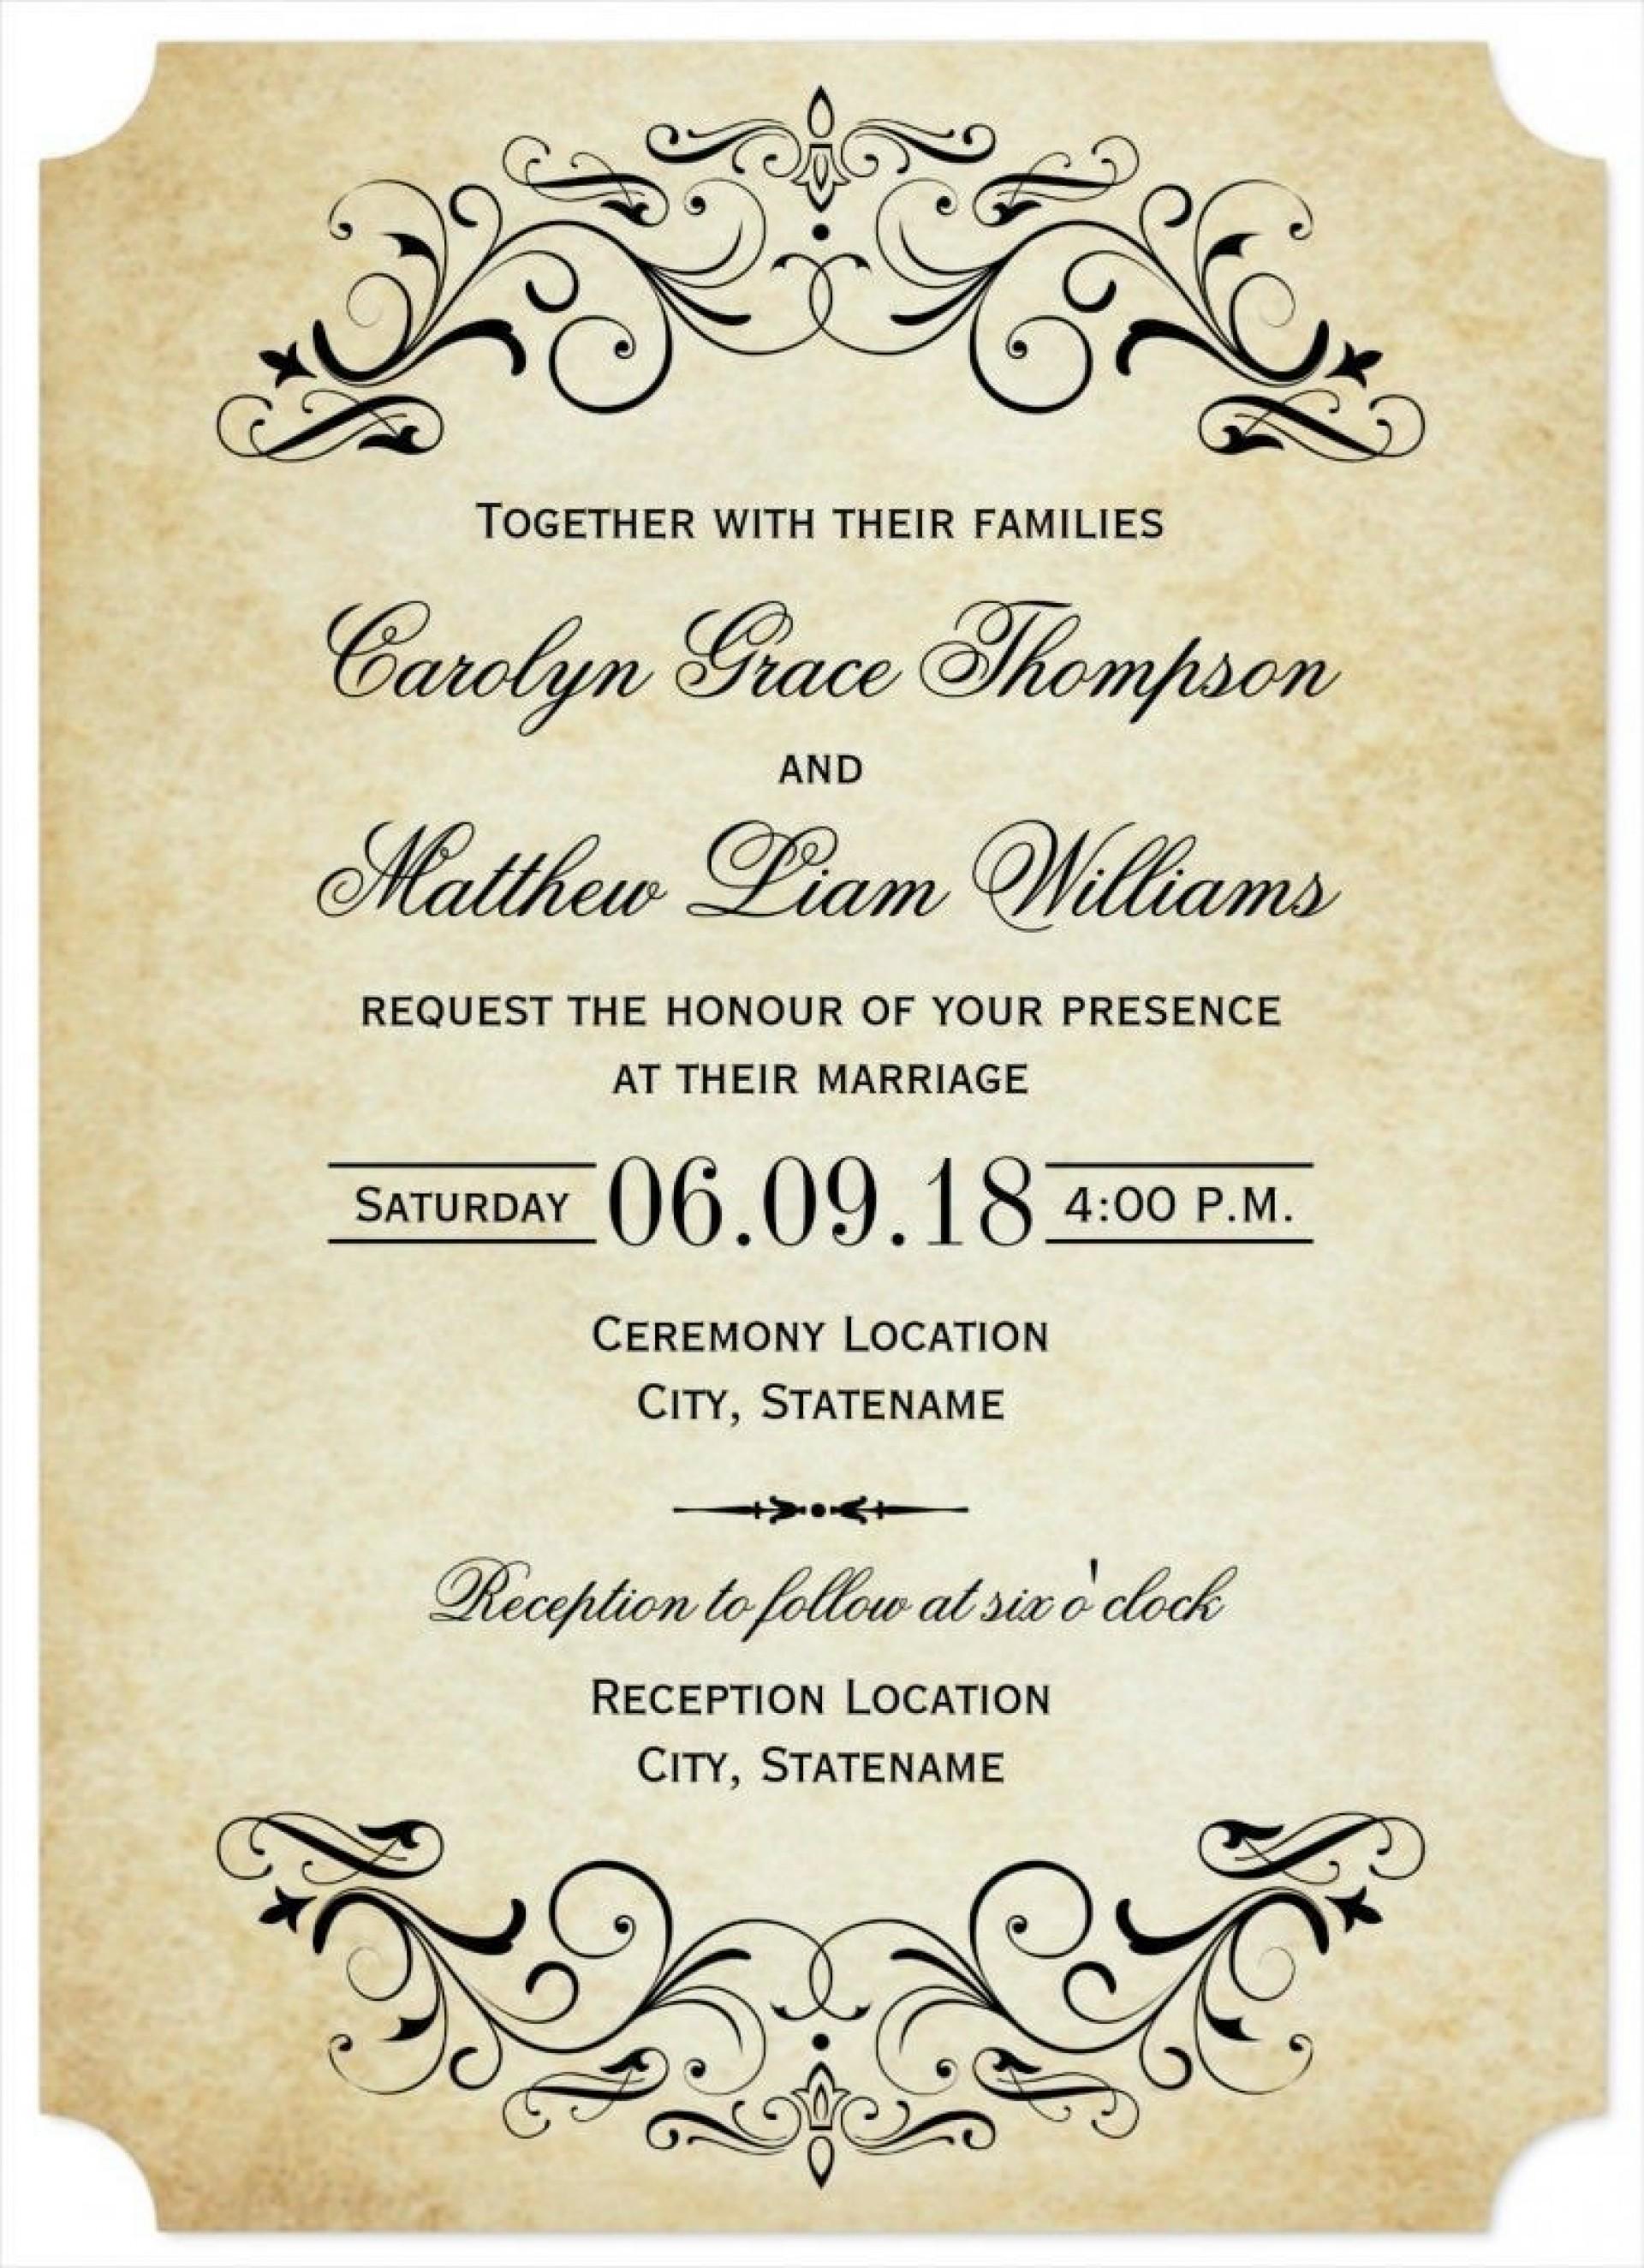 001 Stupendou Formal Wedding Invitation Template Highest Quality  Templates Email Format Wording Free1920